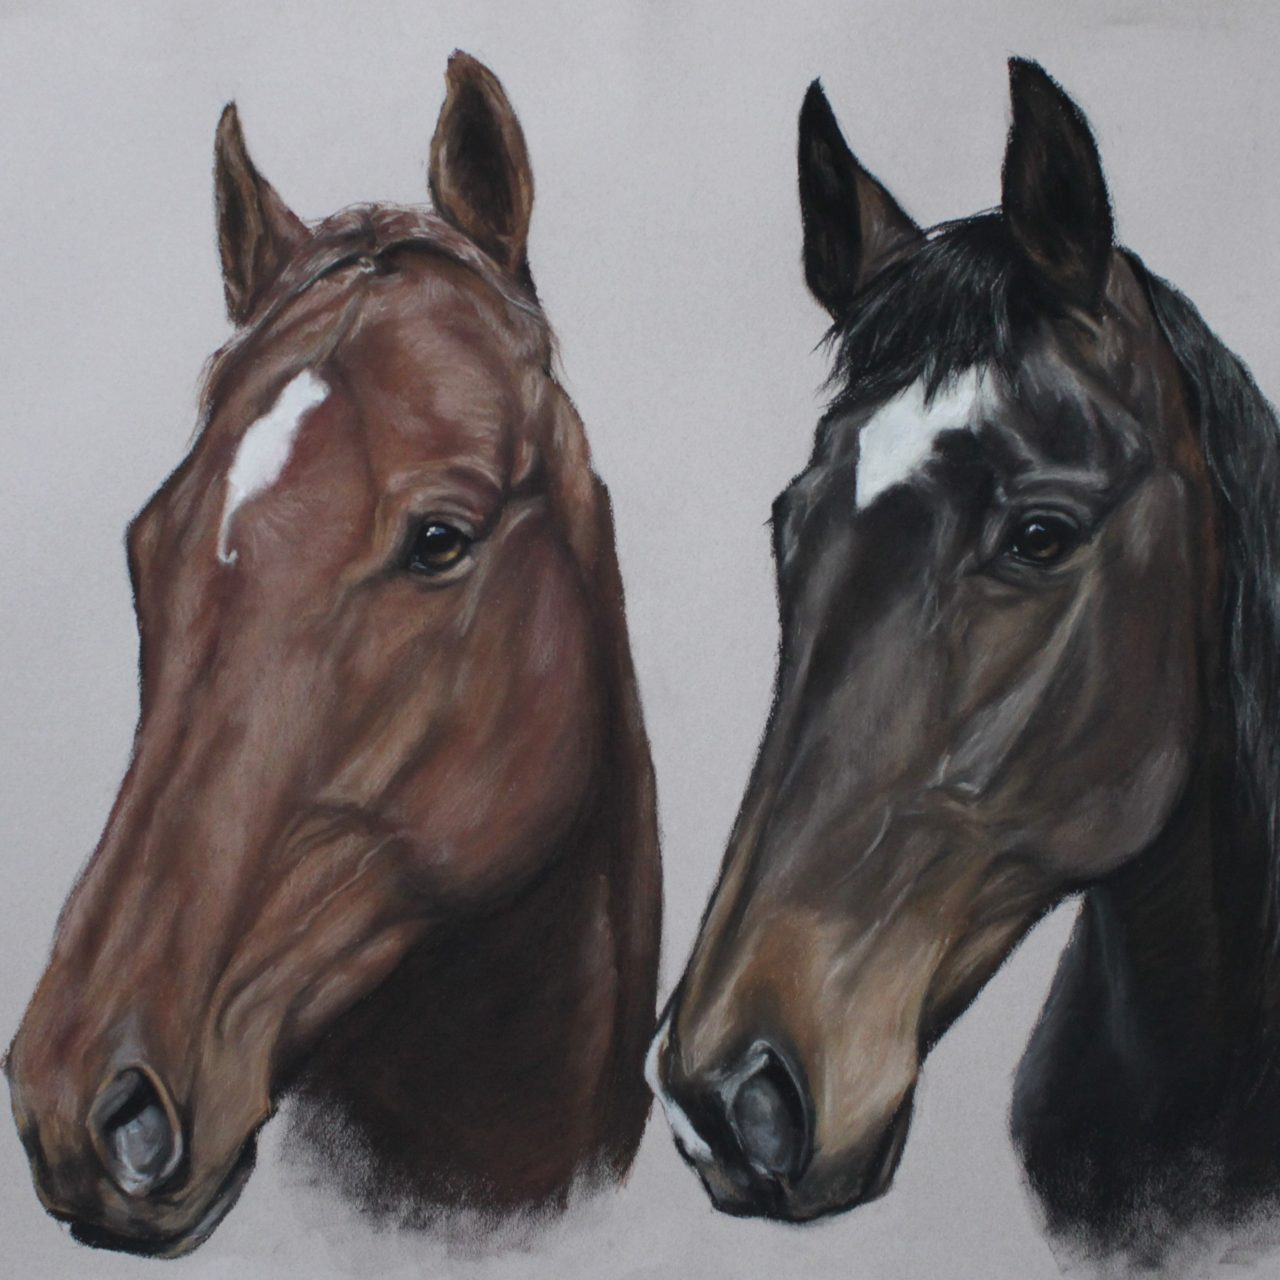 https://www.customhorseportraits.com/wp-content/uploads/Michael-Ross-Portrait-1280x1280.jpg